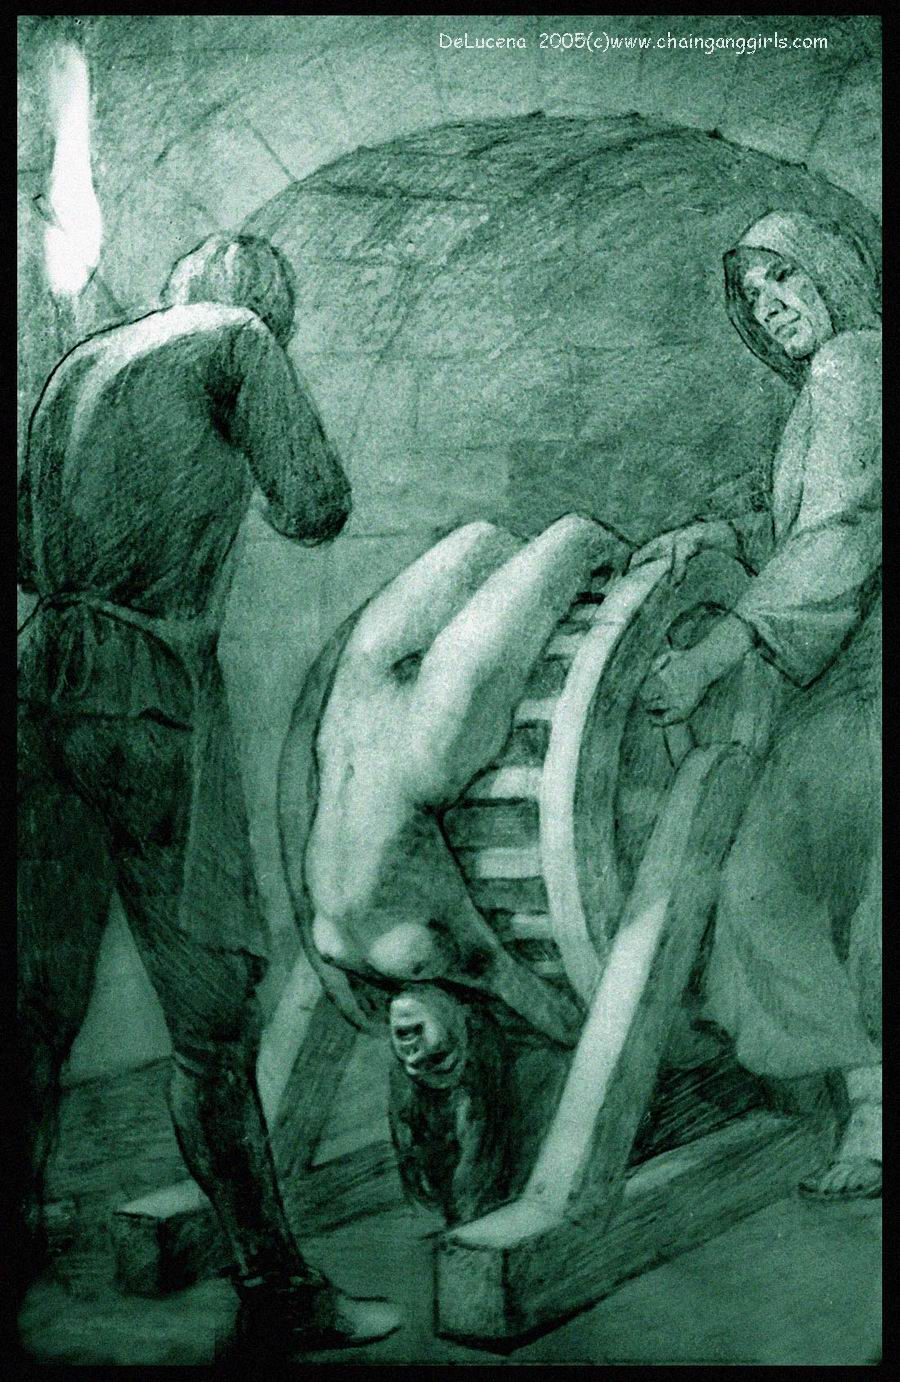 The wheel was one of the most popular and insidious methods of torture and execution practiced.